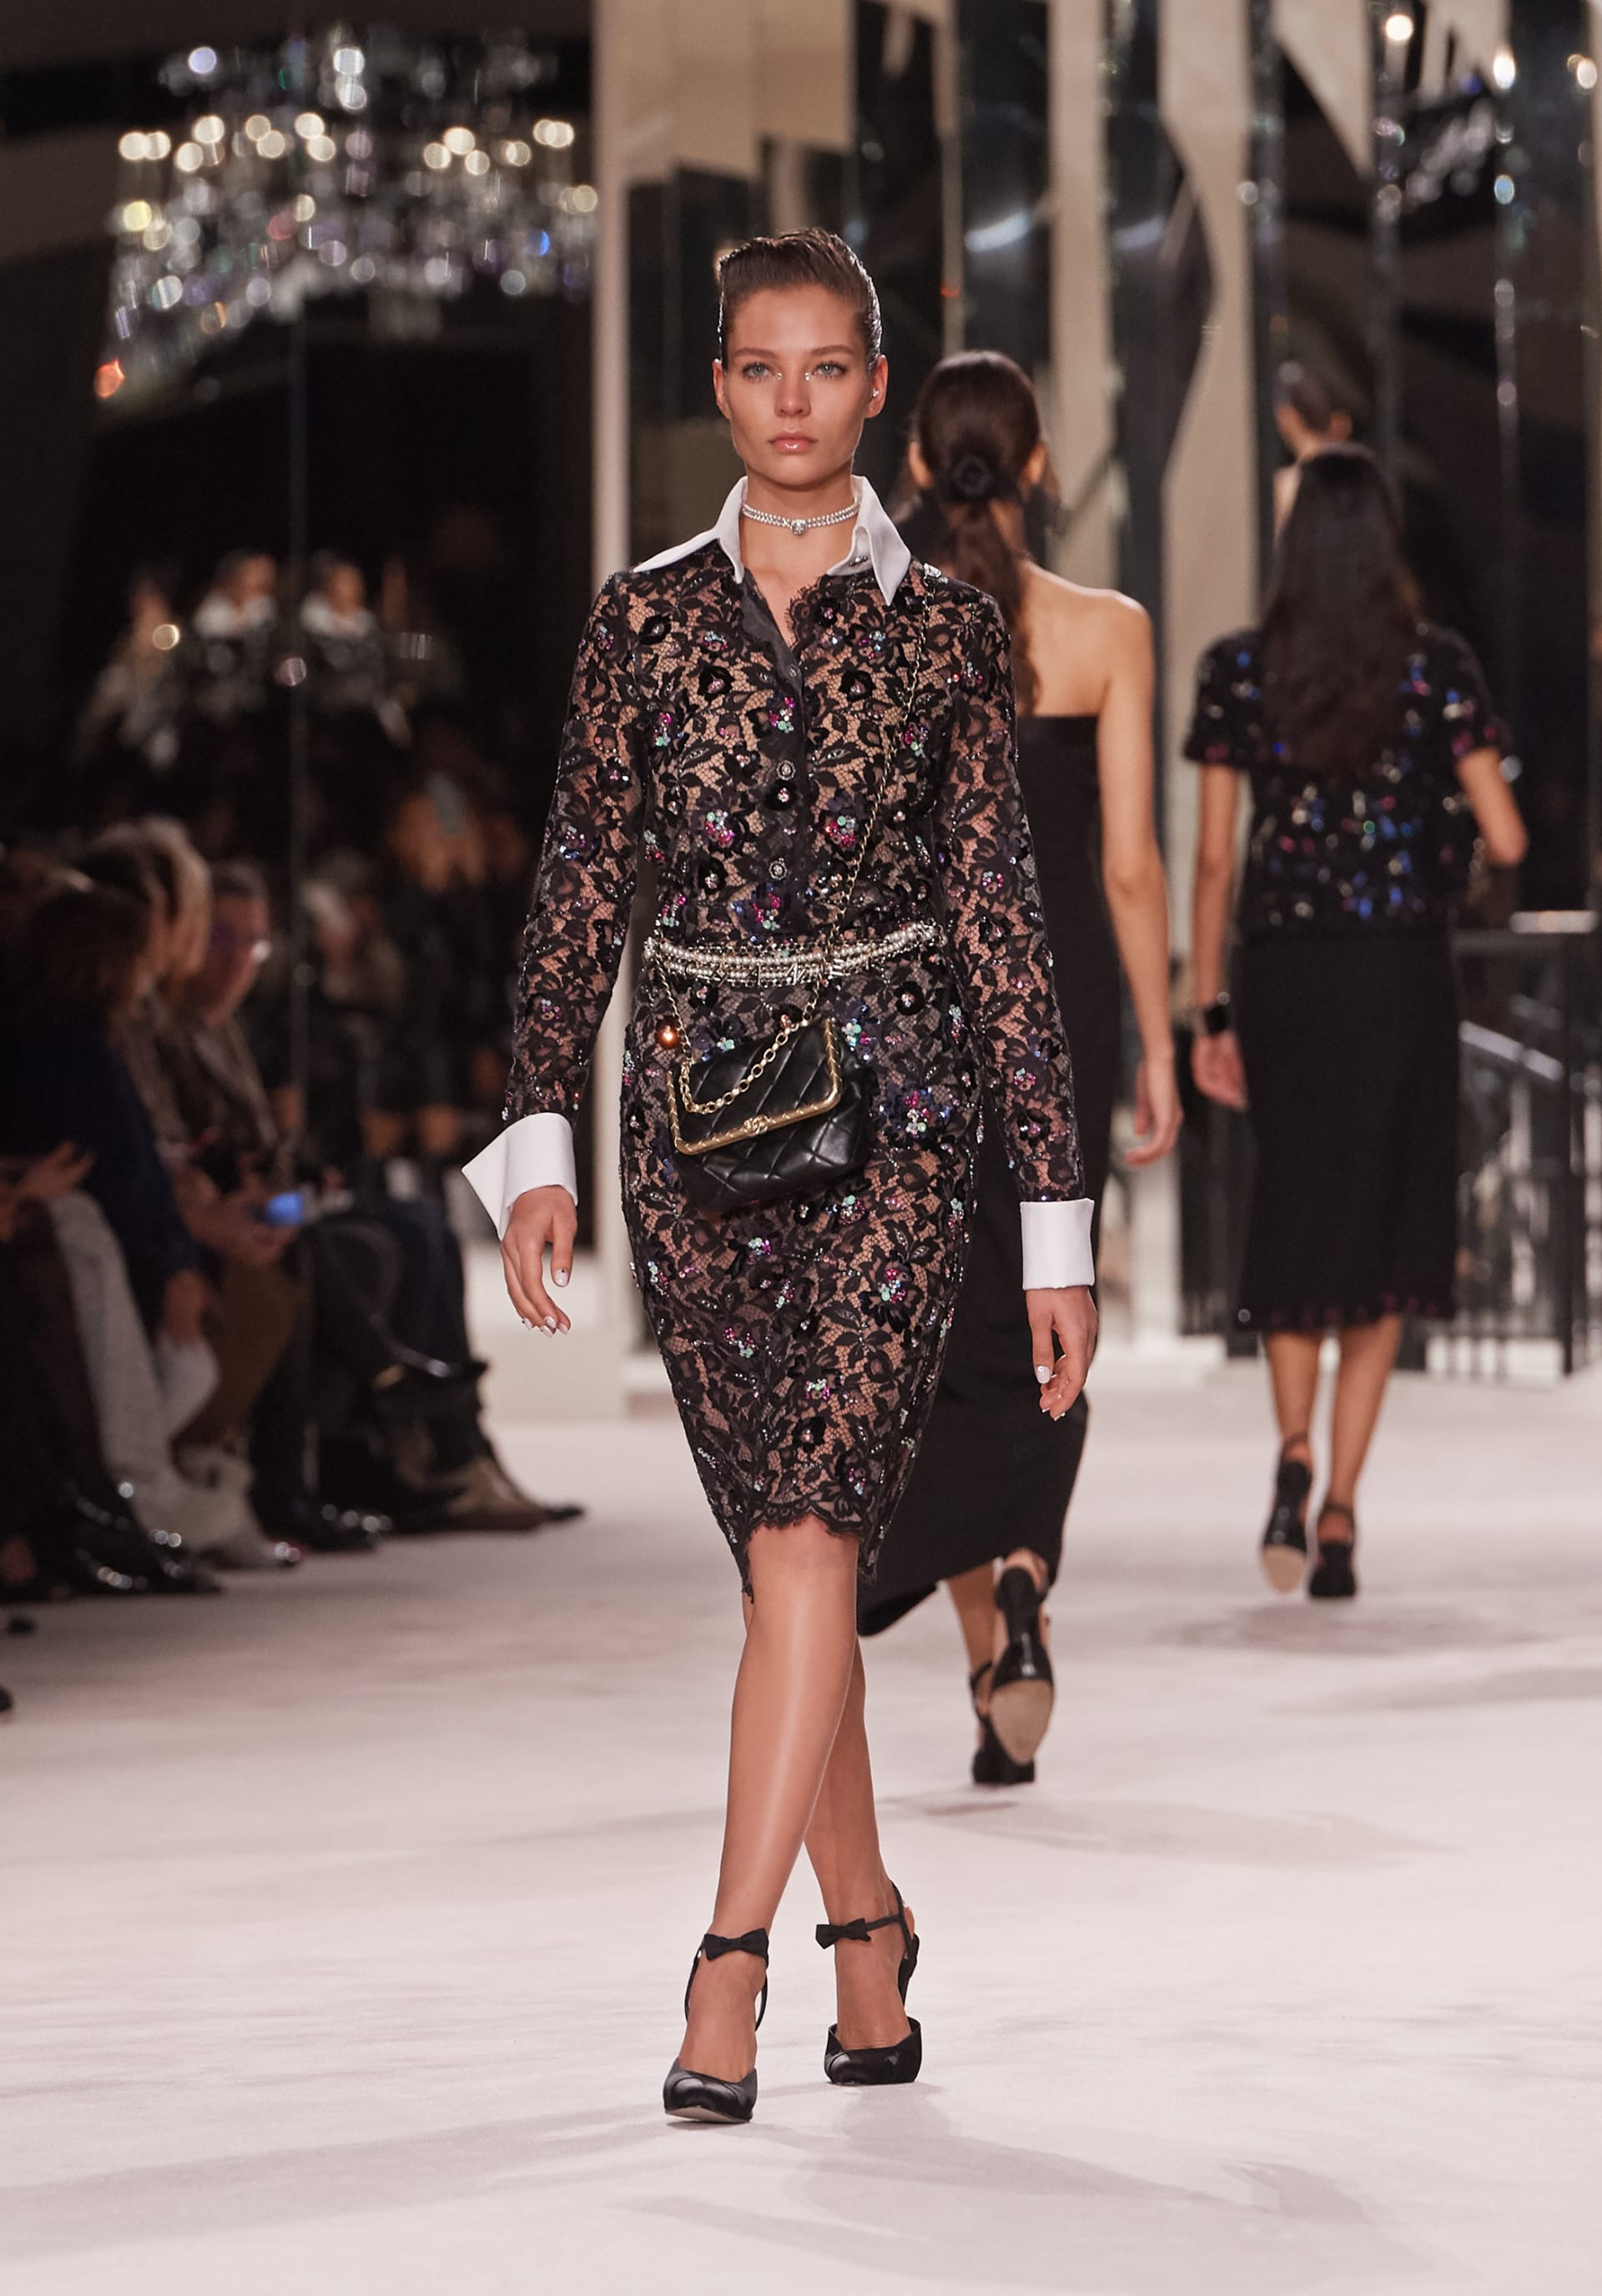 View 1 - Look 54 - Métiers d'Art 2019/20 - see full sized version